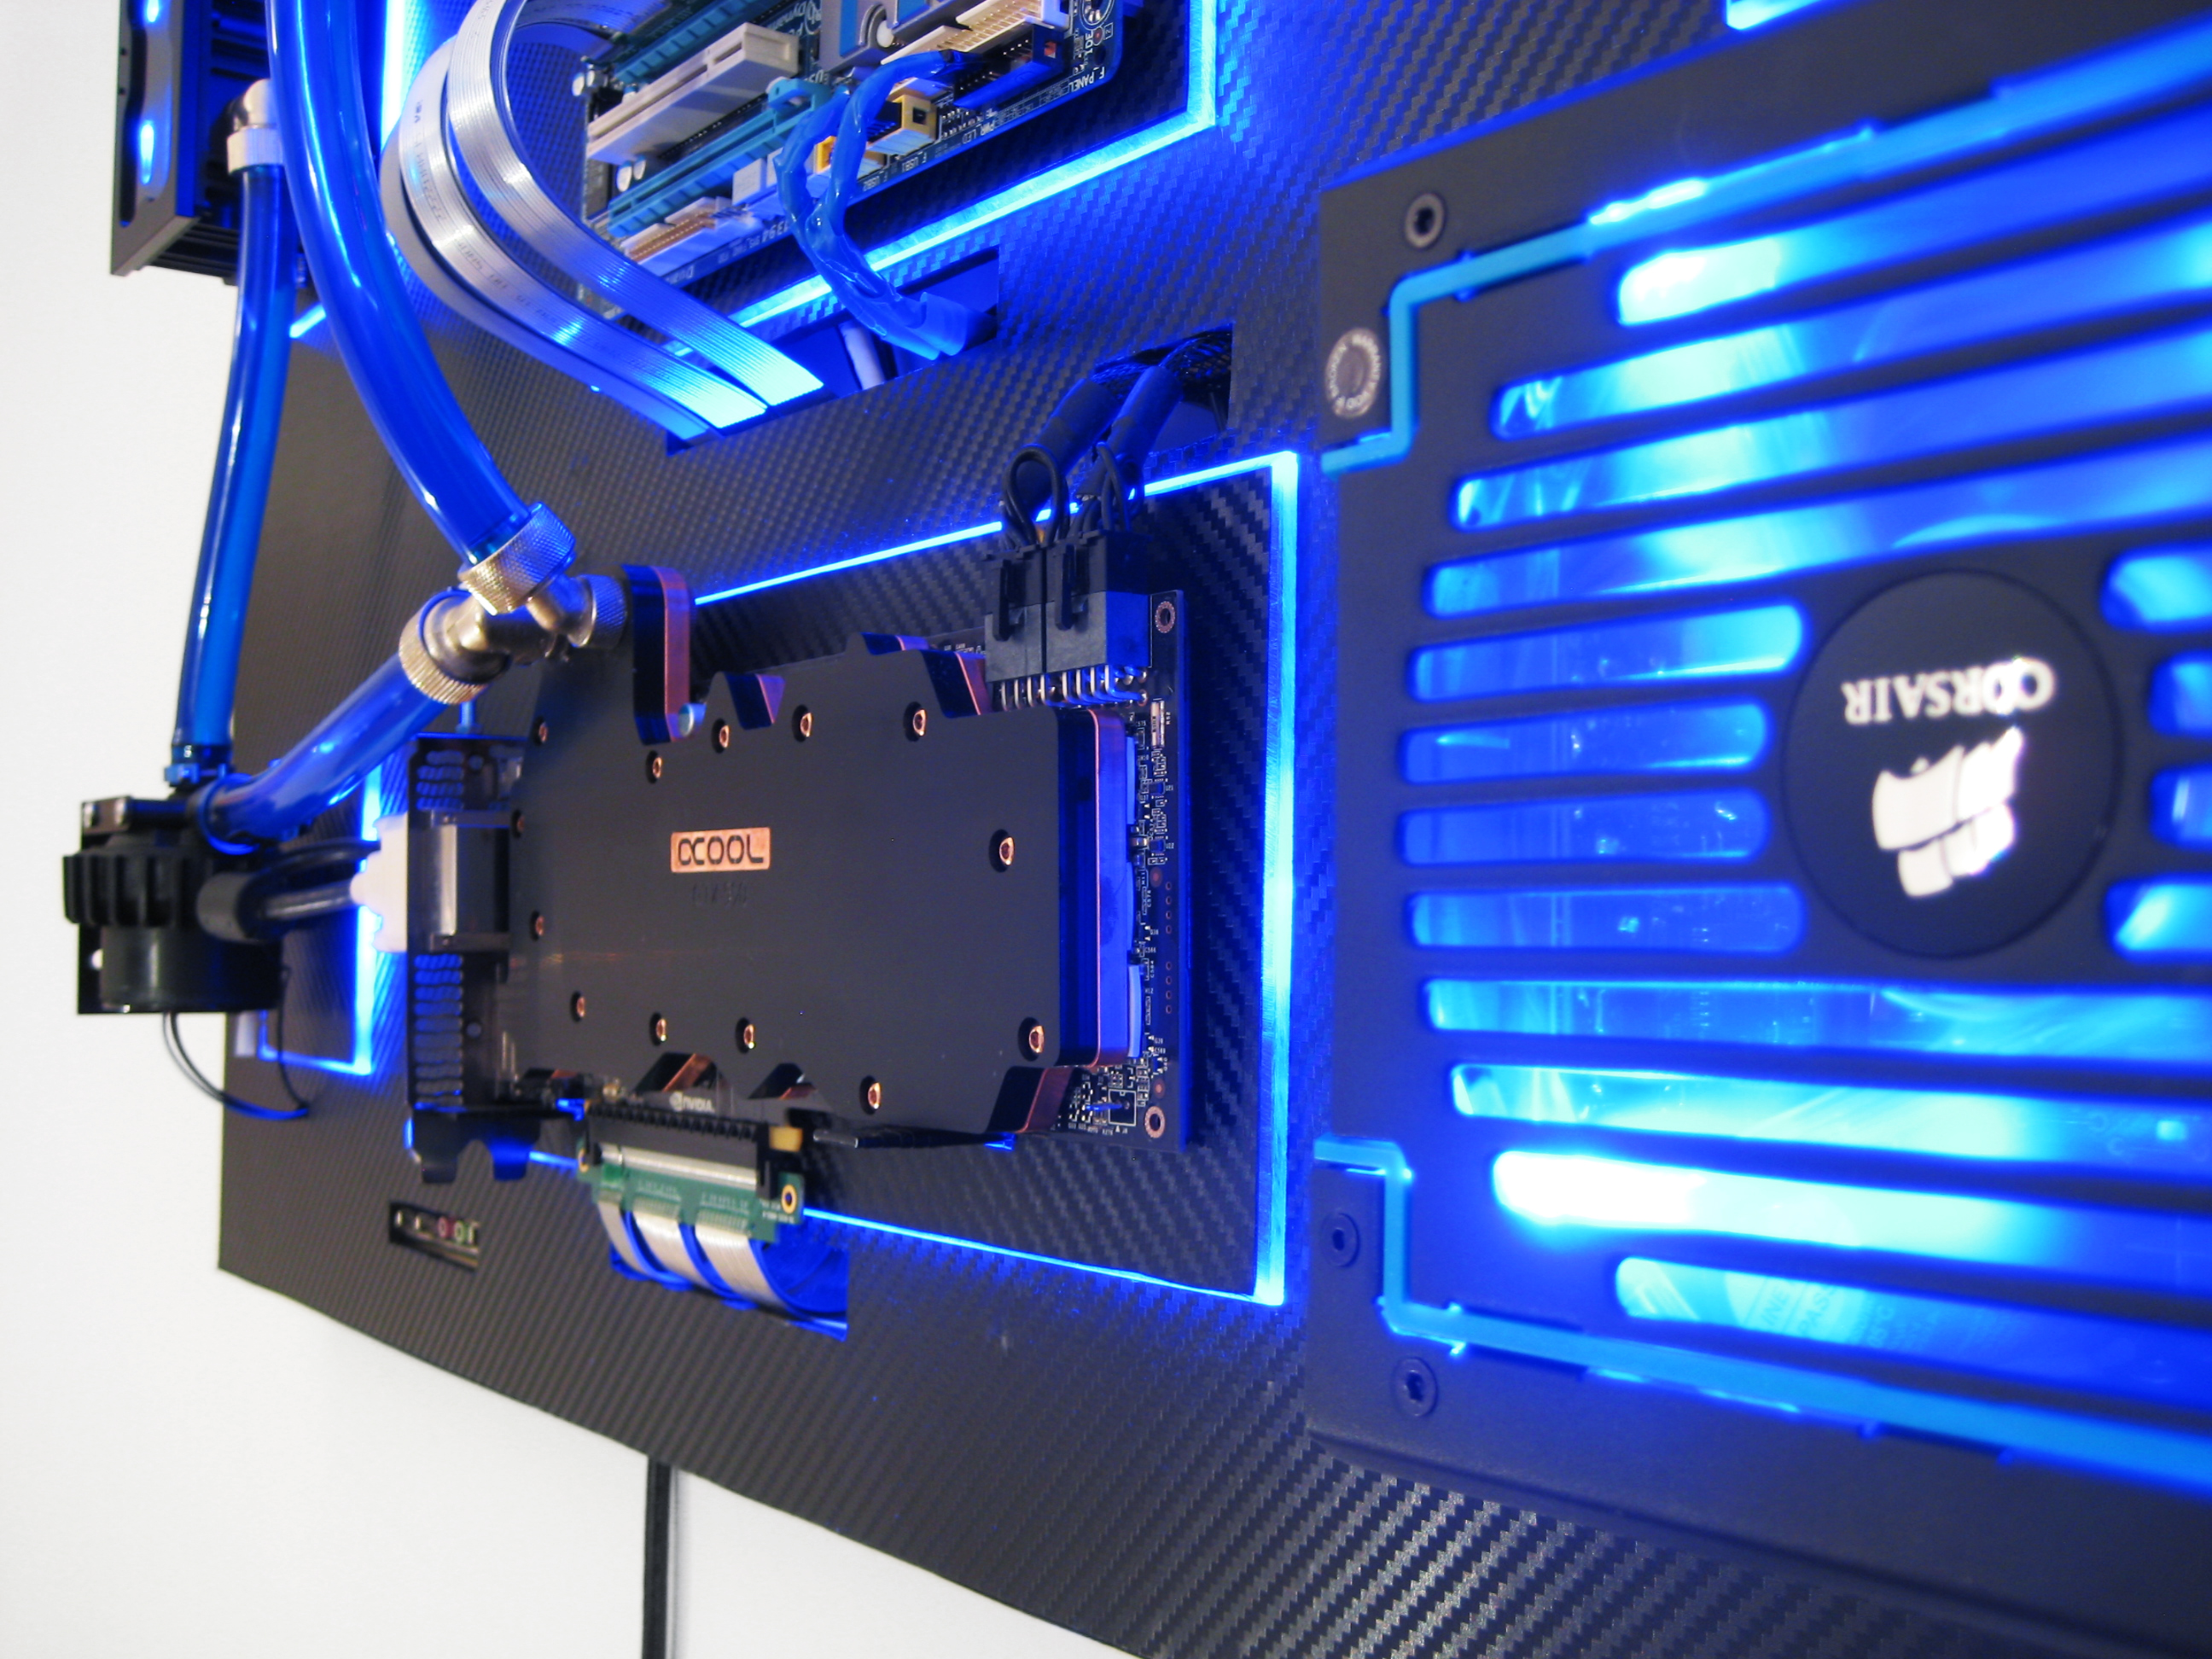 Wall Mounted Water Cooled Pc The Recoilmachine H Ard